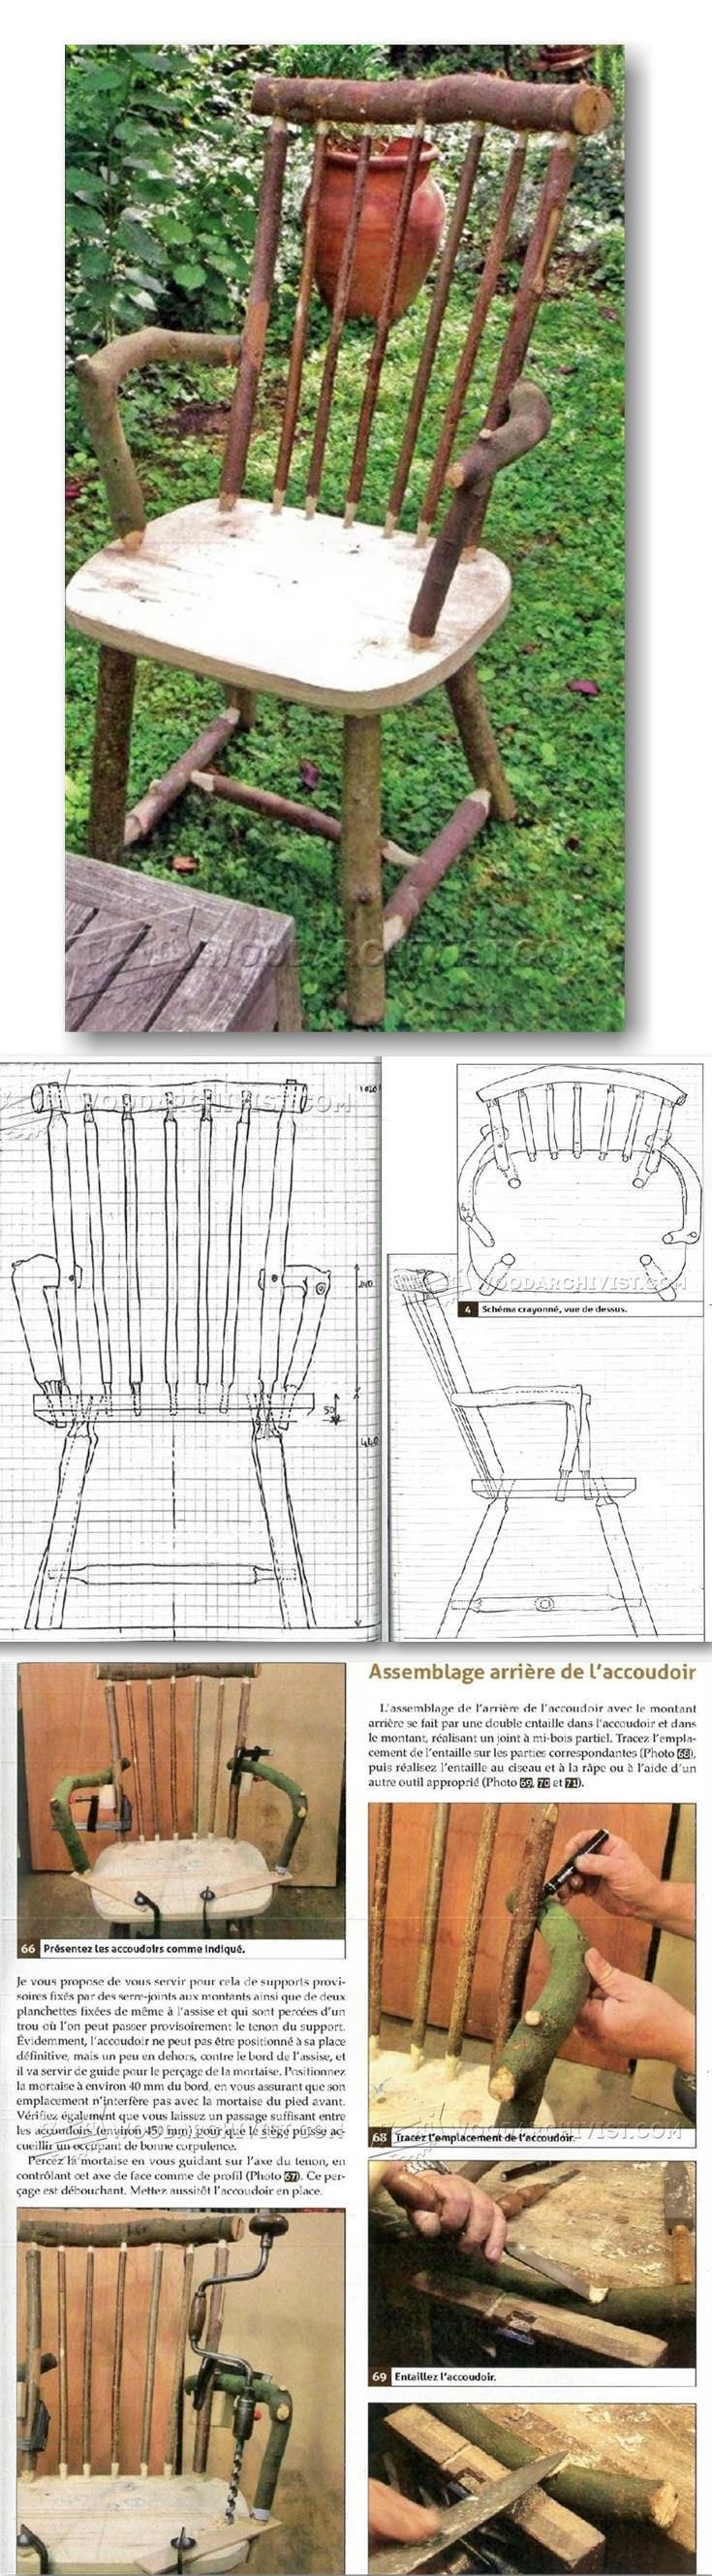 Rustic Chair Plans - Outdoor Furniture Plans and Projects   WoodArchivist.com